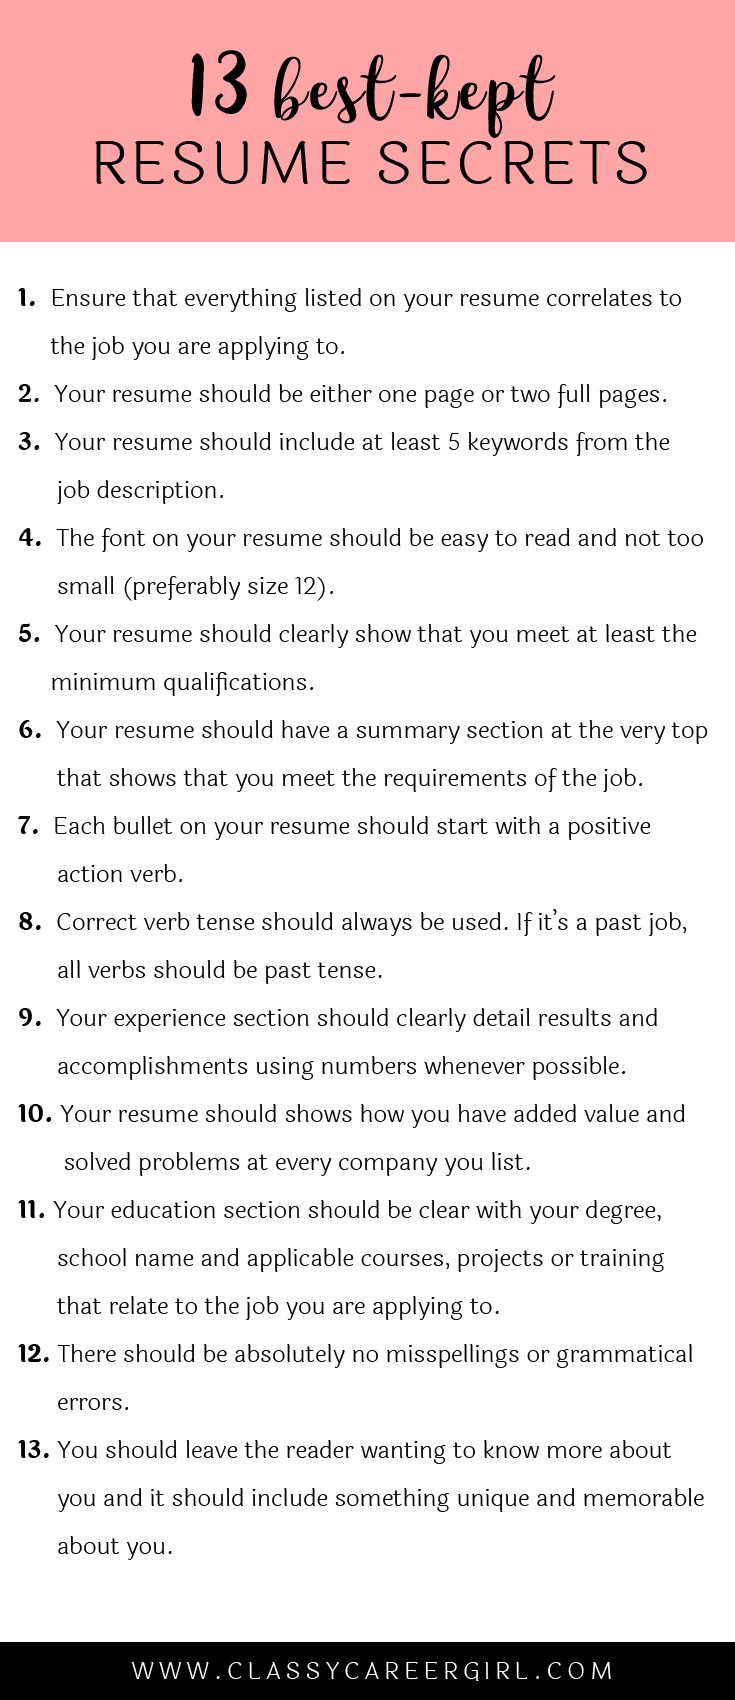 Opposenewapstandardsus  Wonderful  Ideas About Resume On Pinterest  Cv Format Resume Cv And  With Heavenly Some Hiring Managers Will Toss Your Resume Out If You Dont Know These  With Easy On The Eye Sample Dental Assistant Resume Also Best Words To Use On Resume In Addition Resume Email Body And Example Resume Objective As Well As Accountant Resume Template Additionally Medical Interpreter Resume From Pinterestcom With Opposenewapstandardsus  Heavenly  Ideas About Resume On Pinterest  Cv Format Resume Cv And  With Easy On The Eye Some Hiring Managers Will Toss Your Resume Out If You Dont Know These  And Wonderful Sample Dental Assistant Resume Also Best Words To Use On Resume In Addition Resume Email Body From Pinterestcom